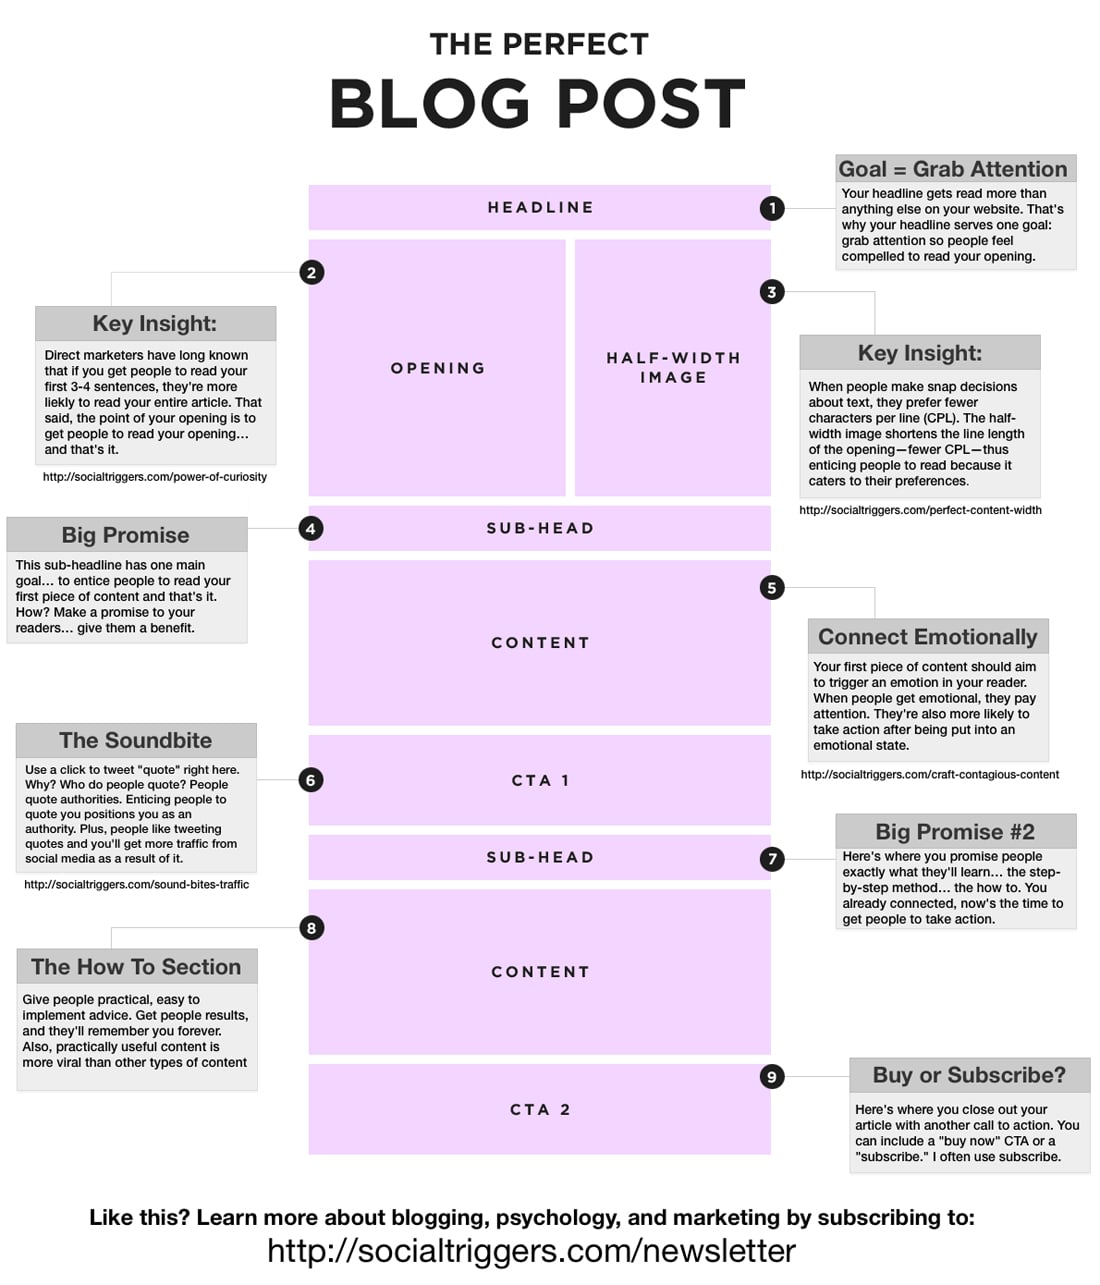 9 Essential Elements Of The Perfect Blog Post [Infographic]